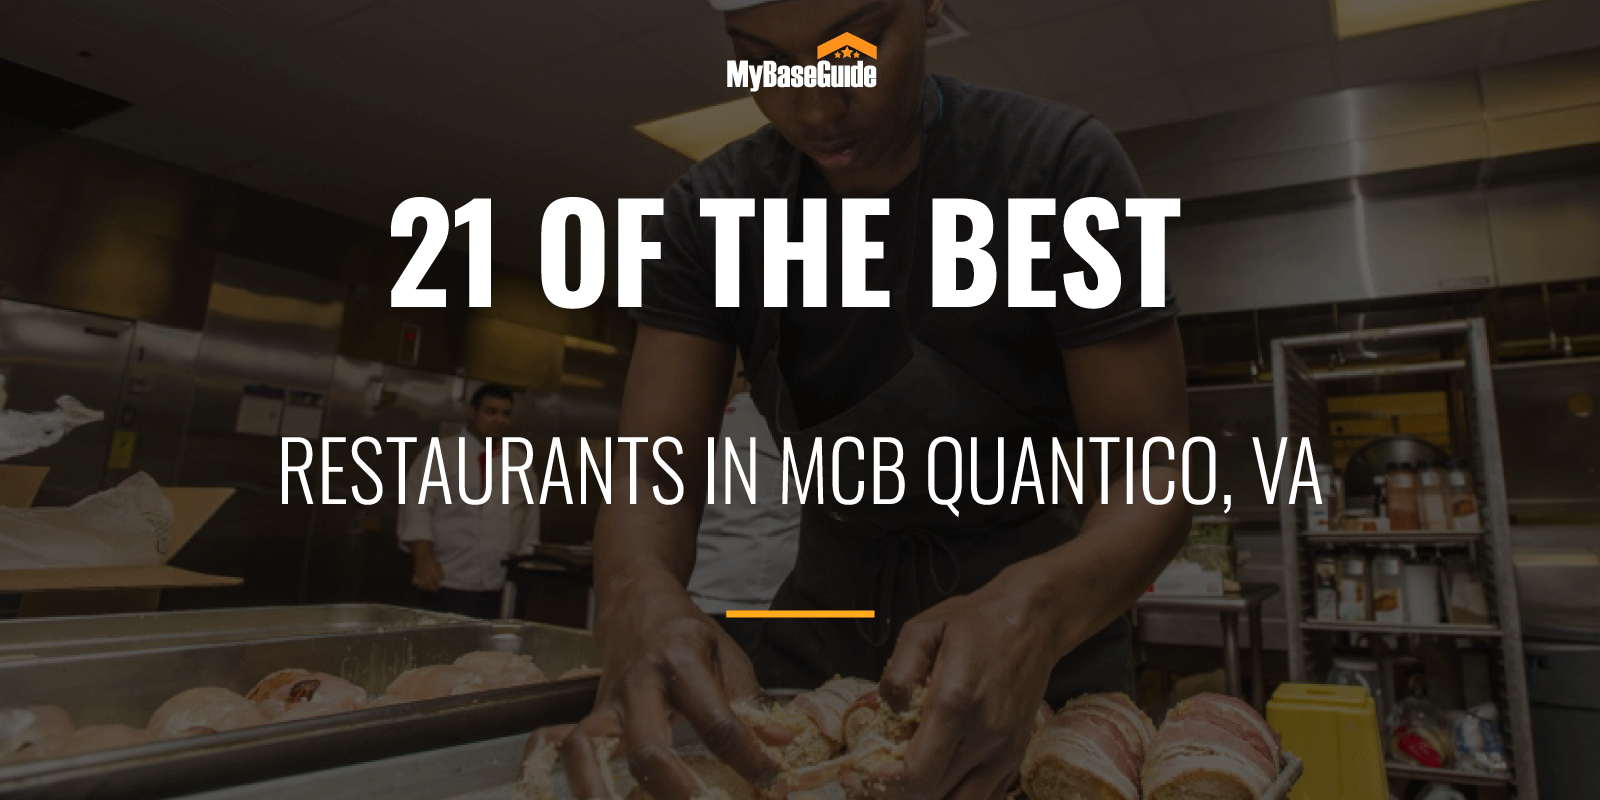 21 of the Best Restaurants in MCB Quantico, VA